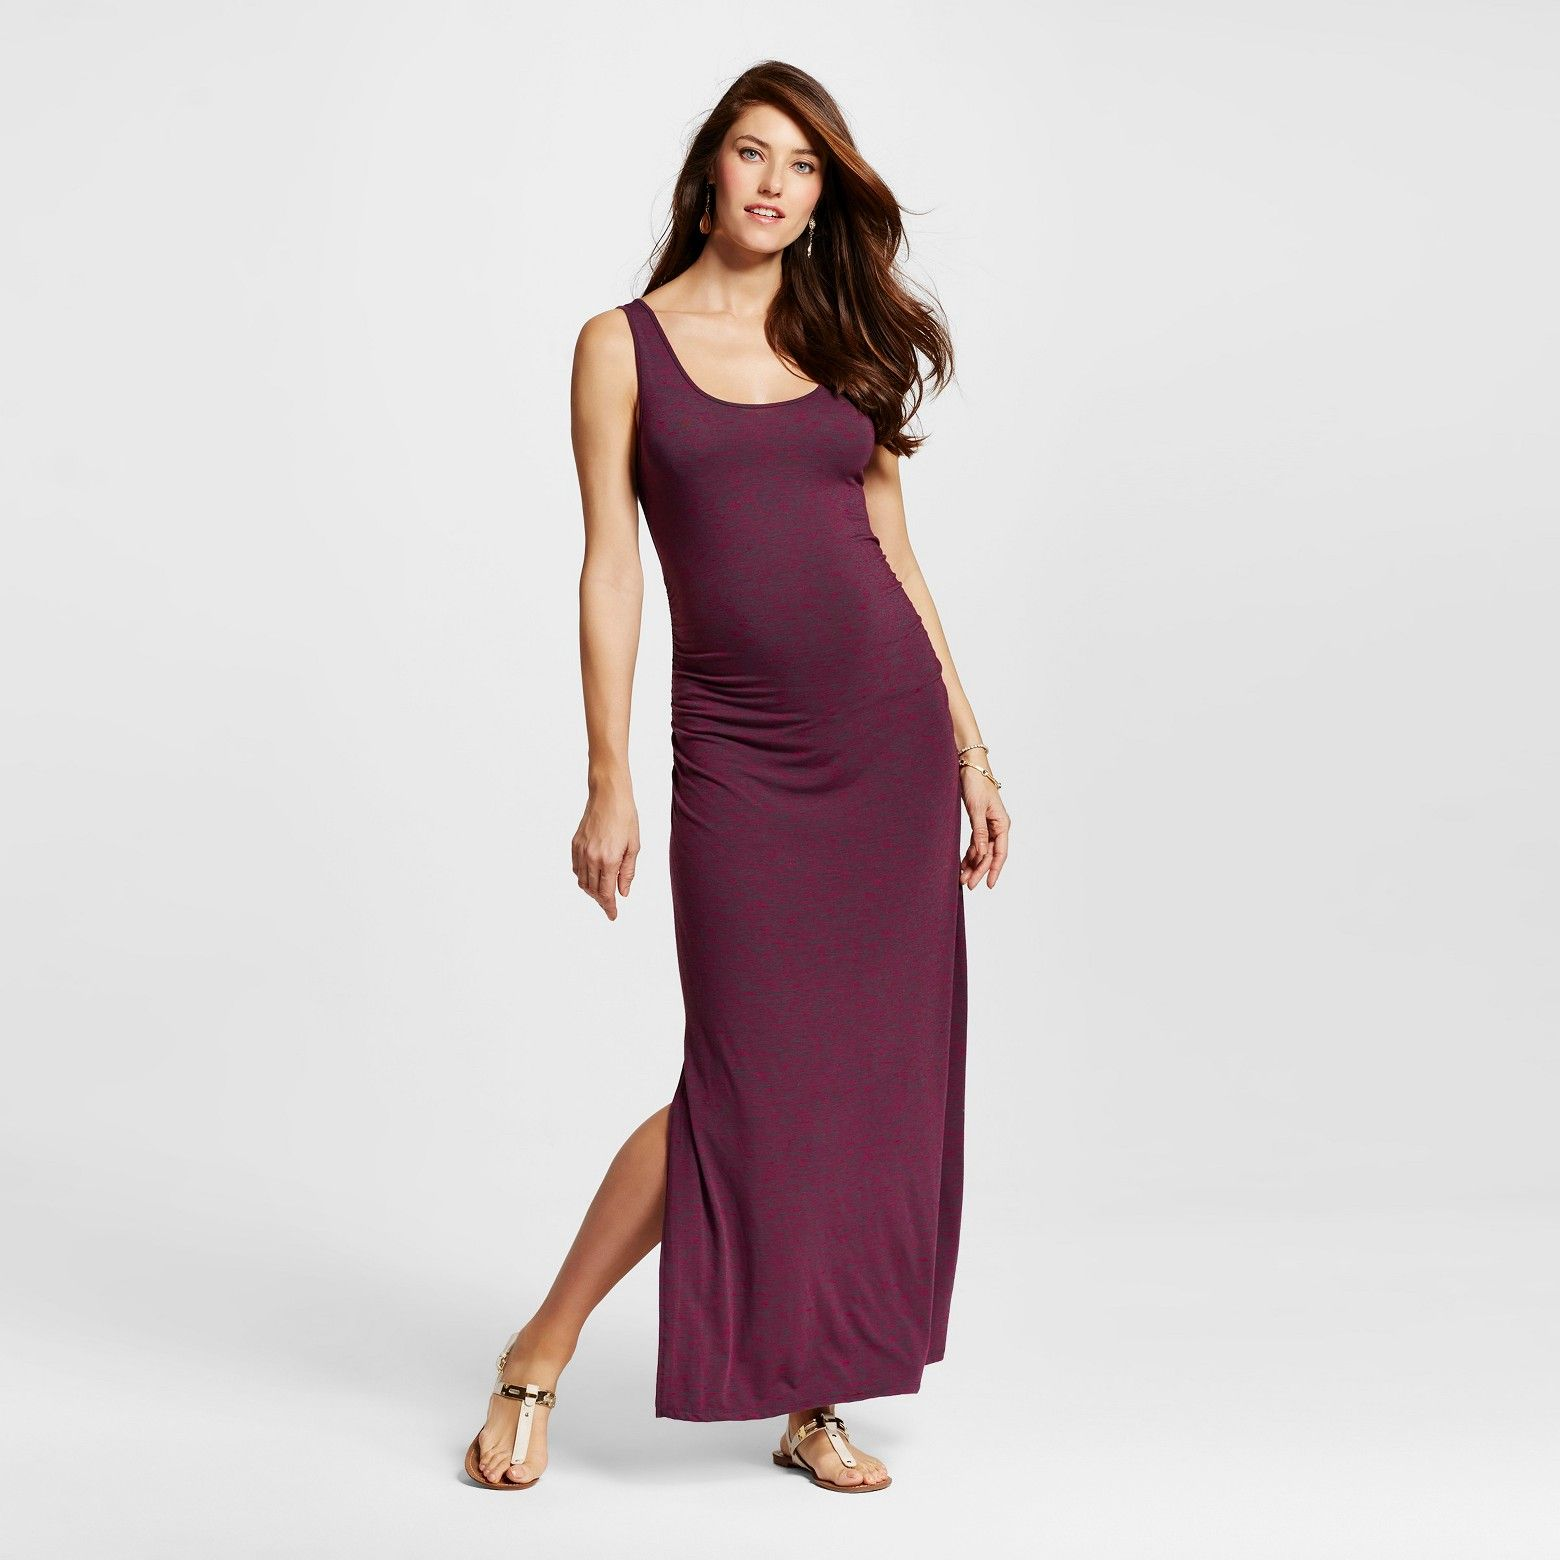 c85e2cea653dc $20 clearance at Target. Burgundy maxi maternity dress. | Maternity ...